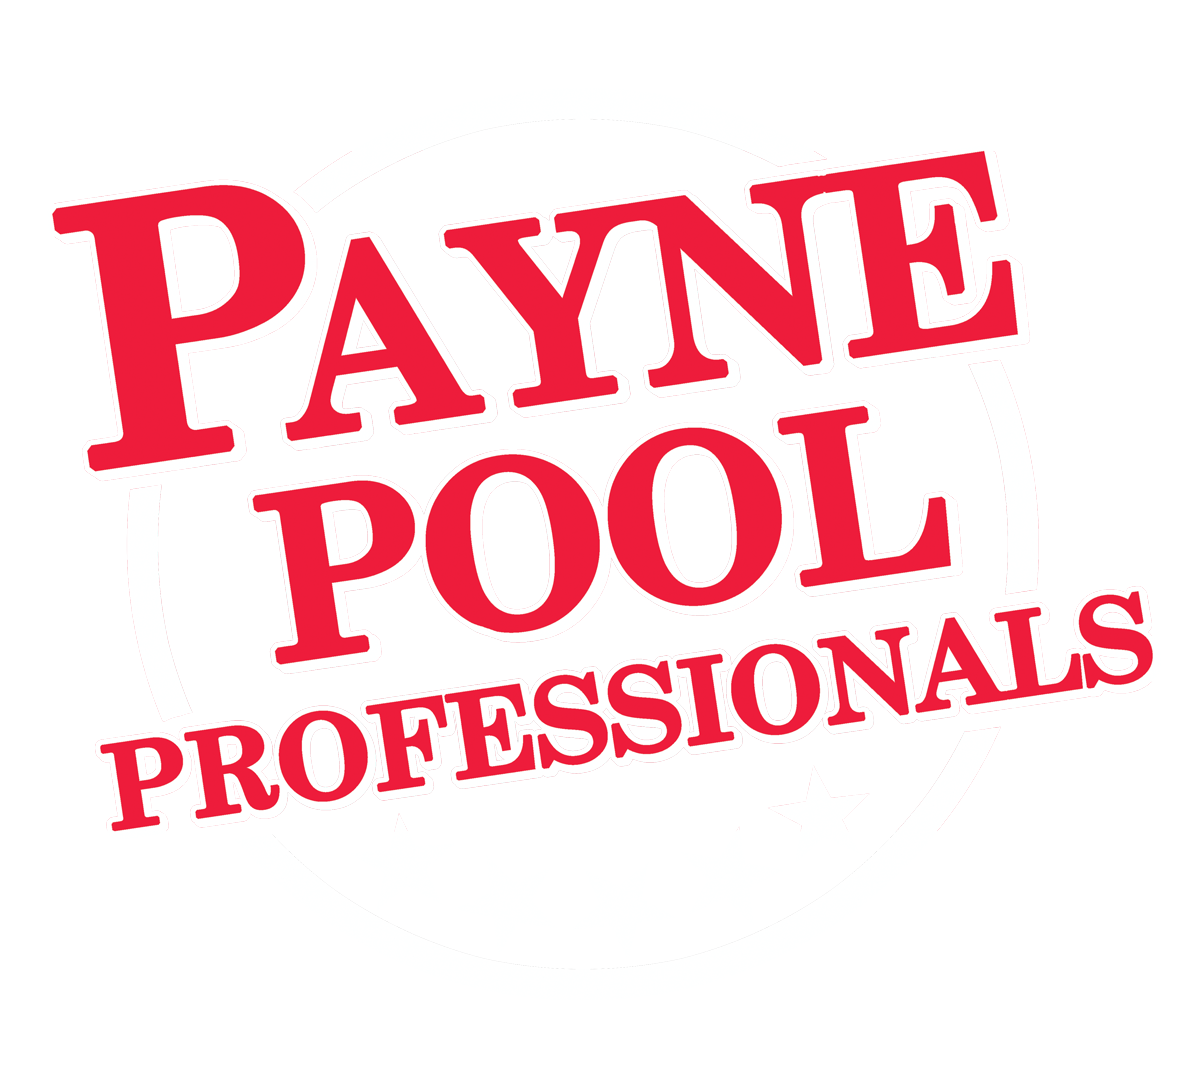 Payne Pool Professionals Logo will link to the home page